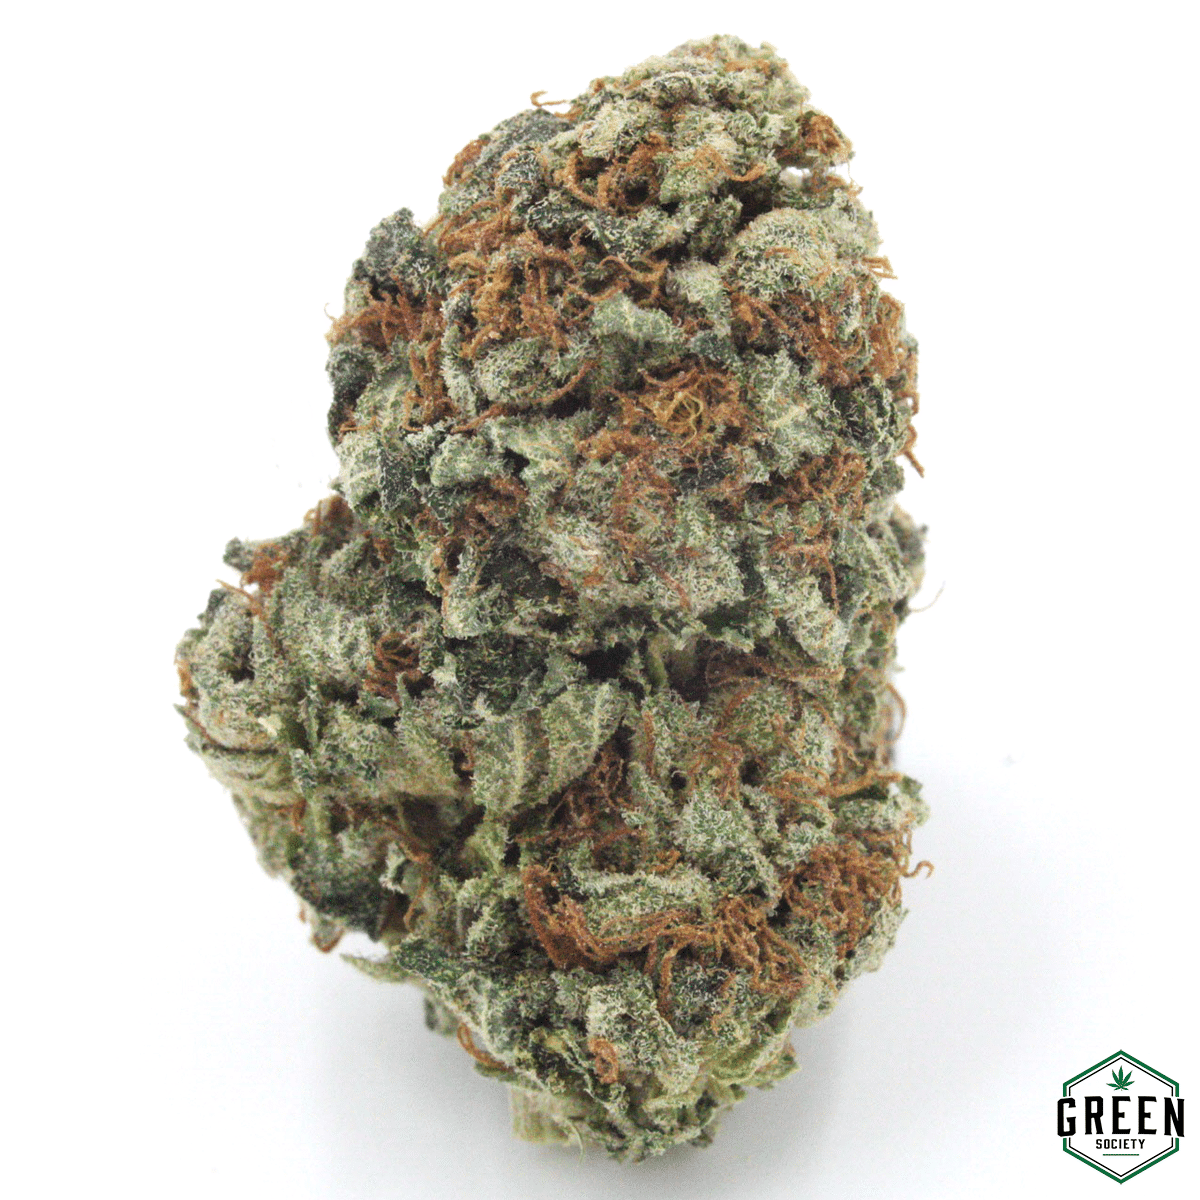 Champagne Kush Ounce Special by Green Society - Image © 2018 Green Society. All Rights Reserved.